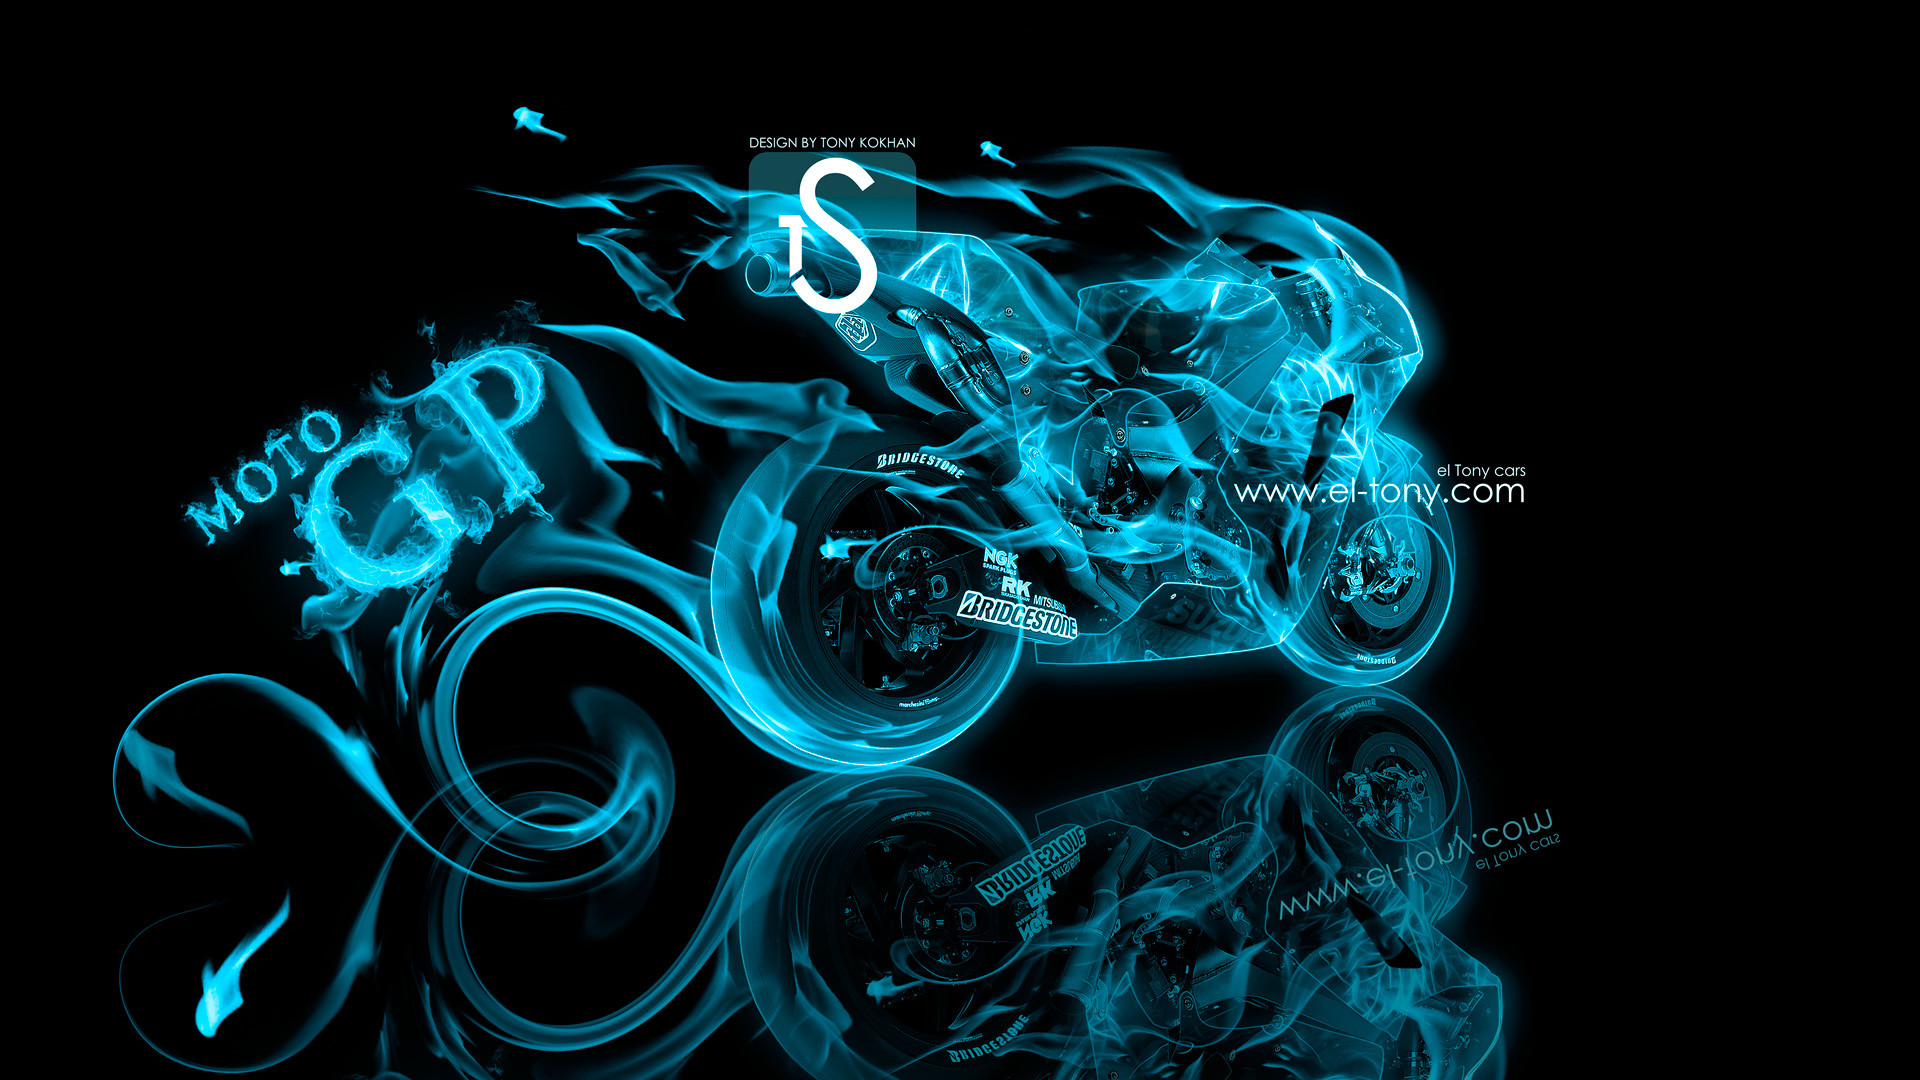 art 2013 hd wallpapers design by tony kokhan el tony Car Pictures .